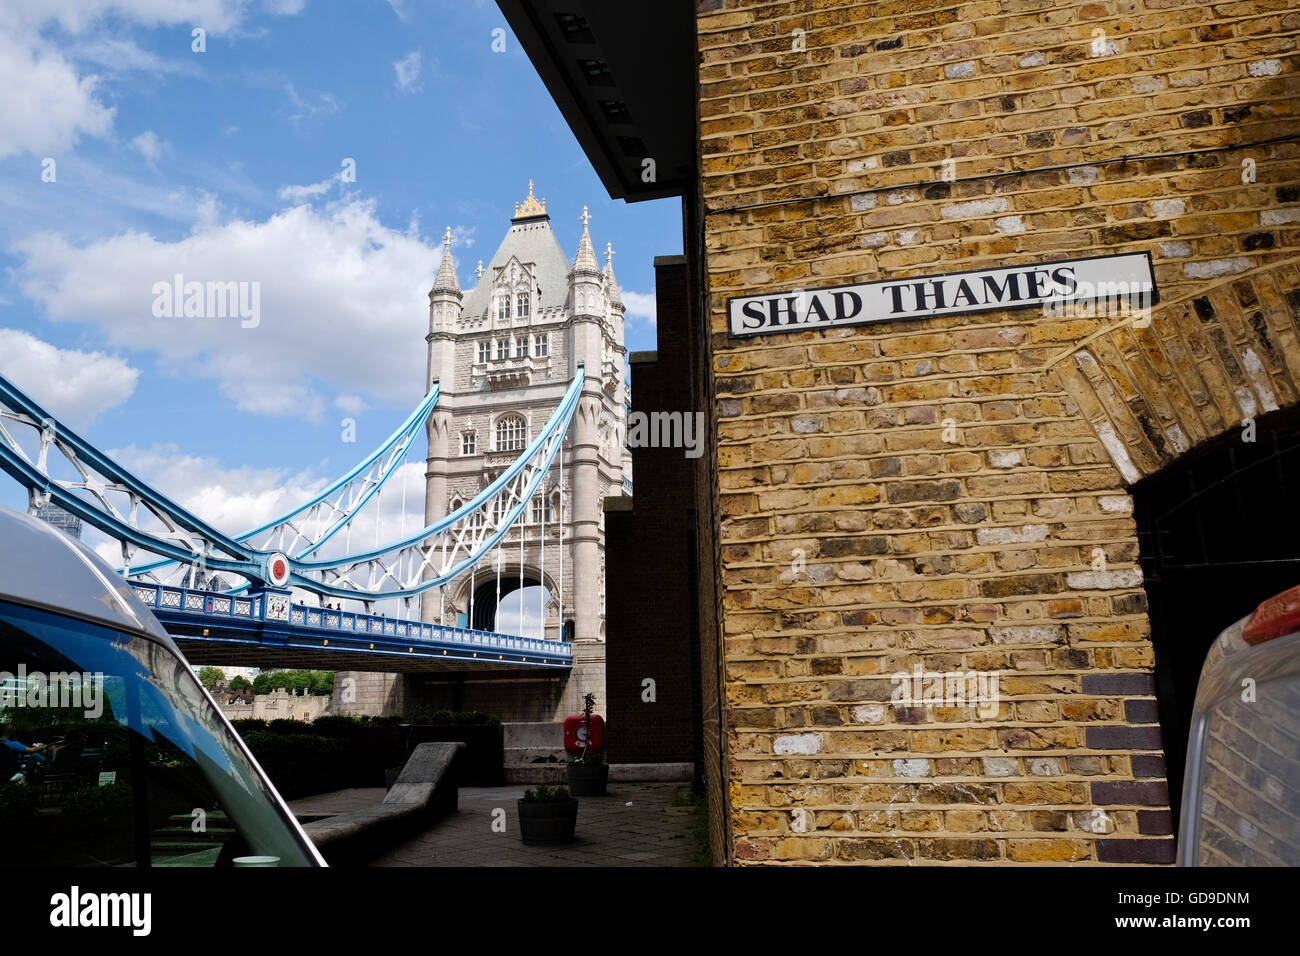 Shad Thames is a historic riverside street next to Tower Bridge in Bermondsey, London, England Tower Bridge in the - Stock Image